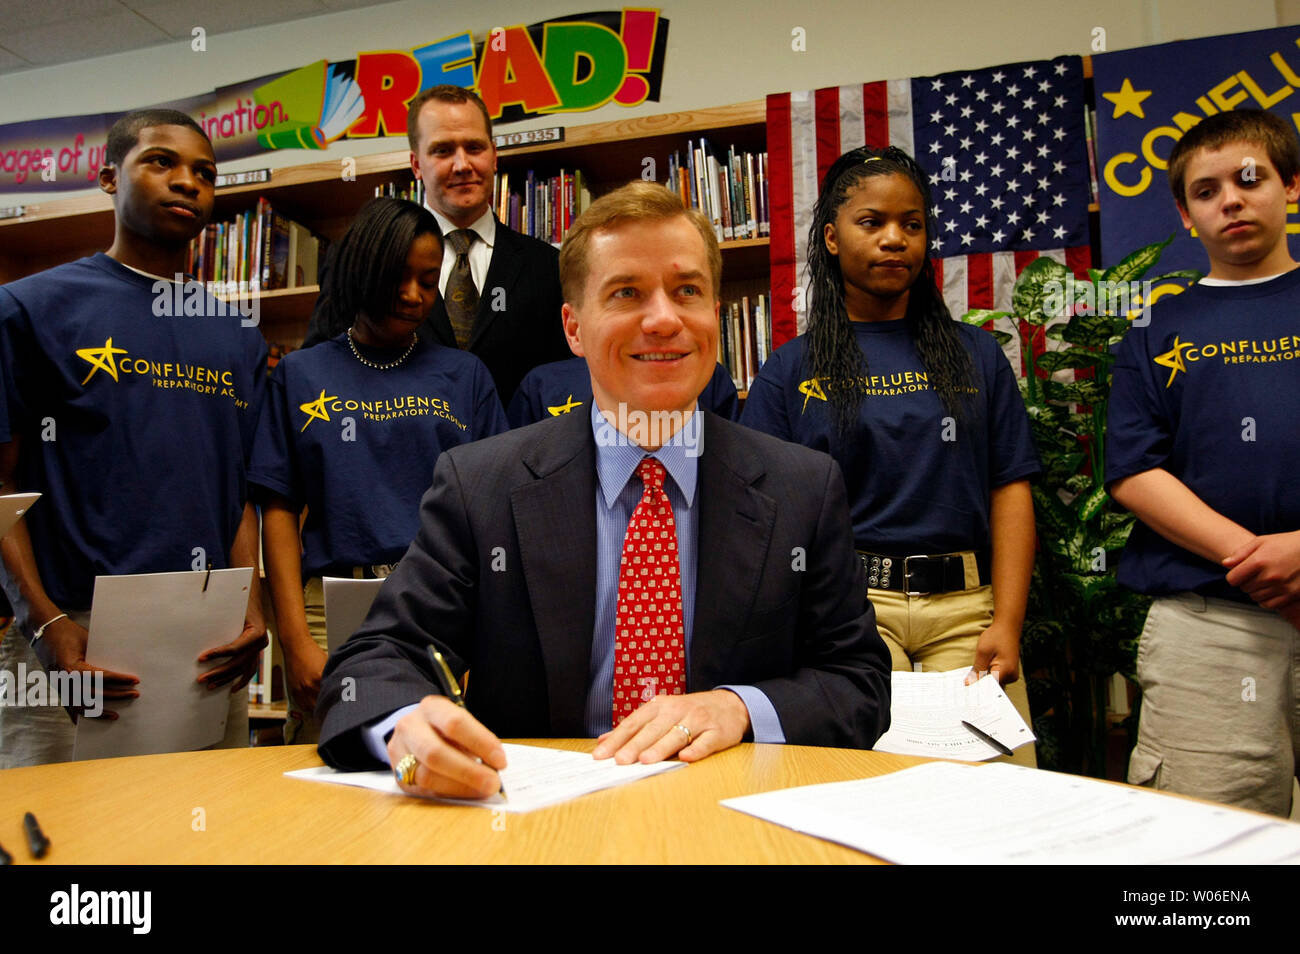 Missouri Governor Matt Blunt signs legislation that will provide experienced professionals an alternate route to second careers as teachers at the Confluence Academy, in St. Louis on May 1, 2008. The bill allows professionals to pursue teaching through an alternative teacher certification program and would benefit students by providing access to professionals such as math, engineering, technology, and science (METS) specialists who can offer innovative curriculum and real-world perspective. (UPI Photo/Bill Greenblatt) Stock Photo